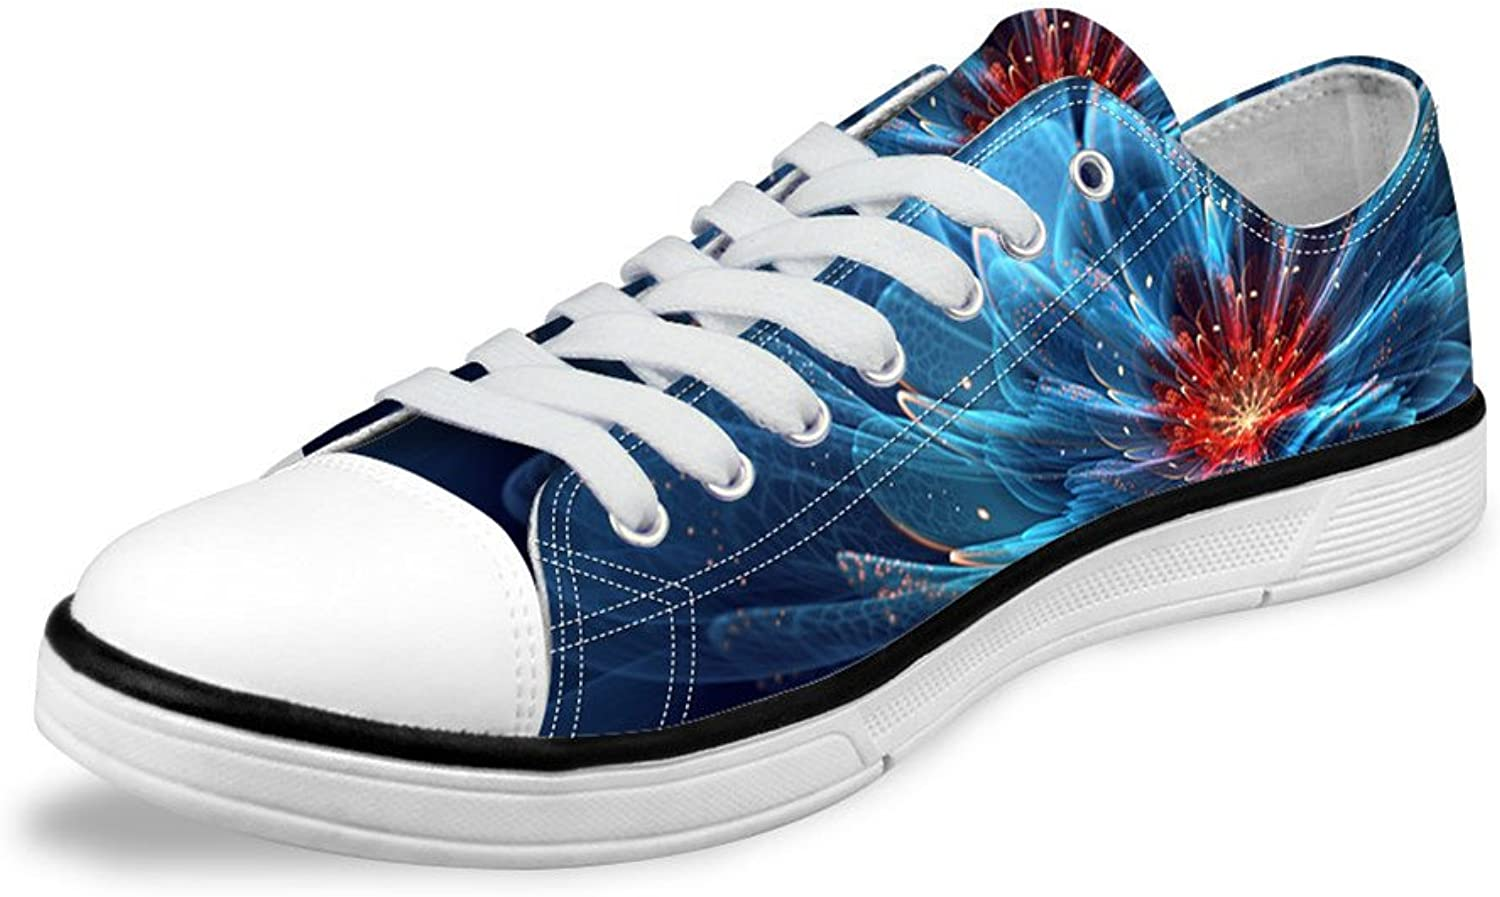 Micandle Womens Fashion Floral Print Low Top Canvas Sneaker shoes